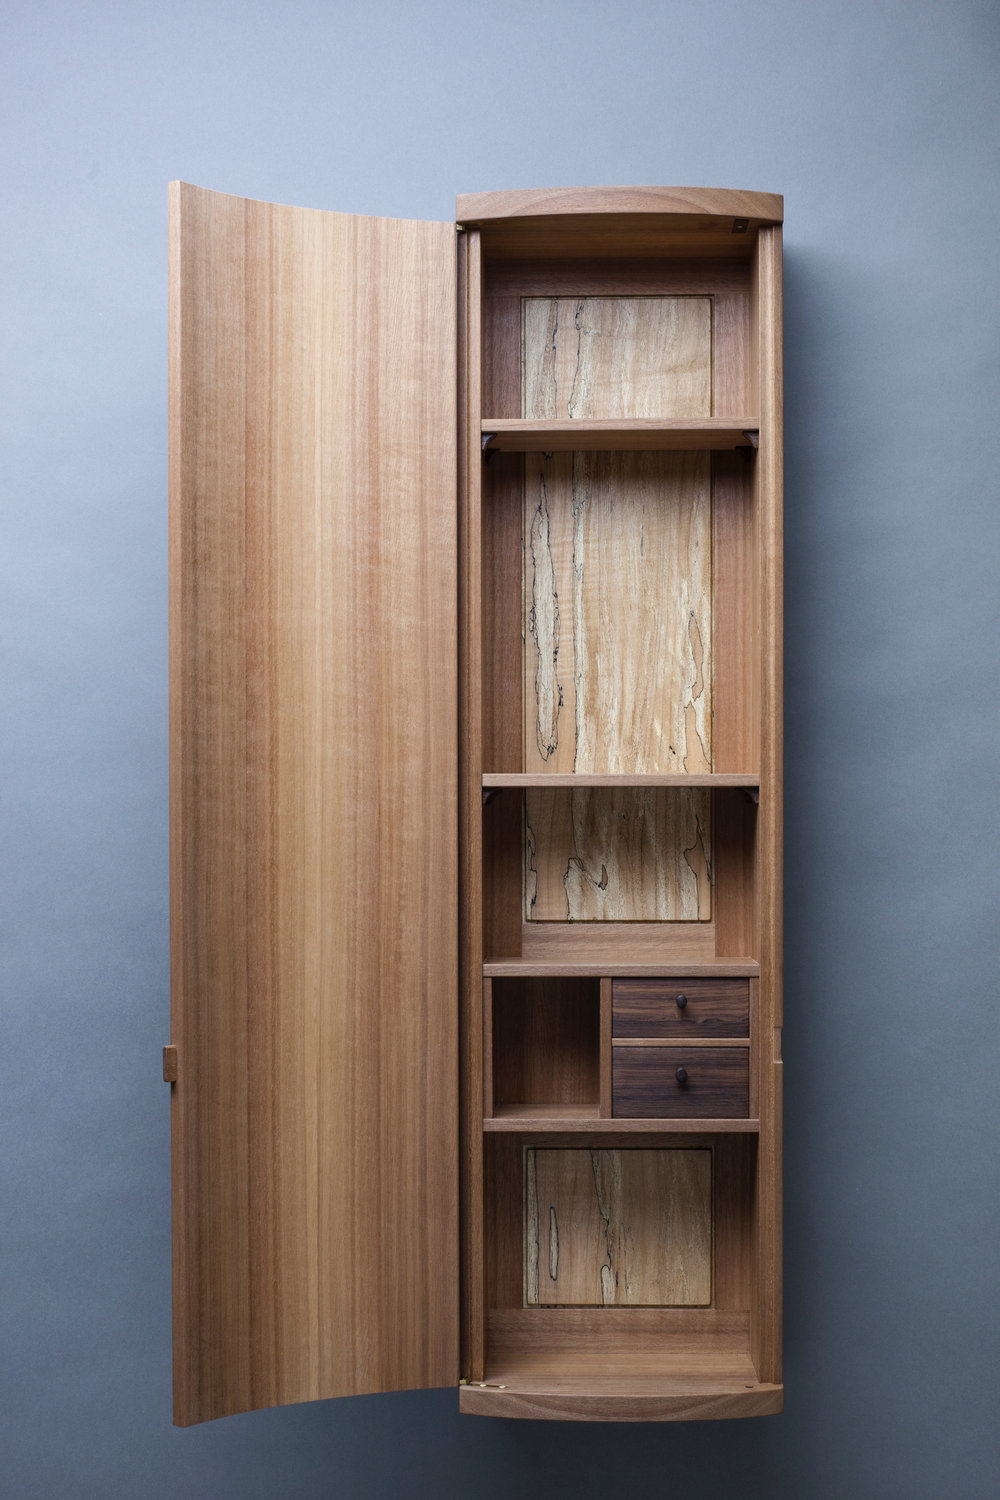 curved front cabinet in makore by Leanne featuring amazonian rosewood drawers and locally harvested spalted maple back panel photography by Tim Andres